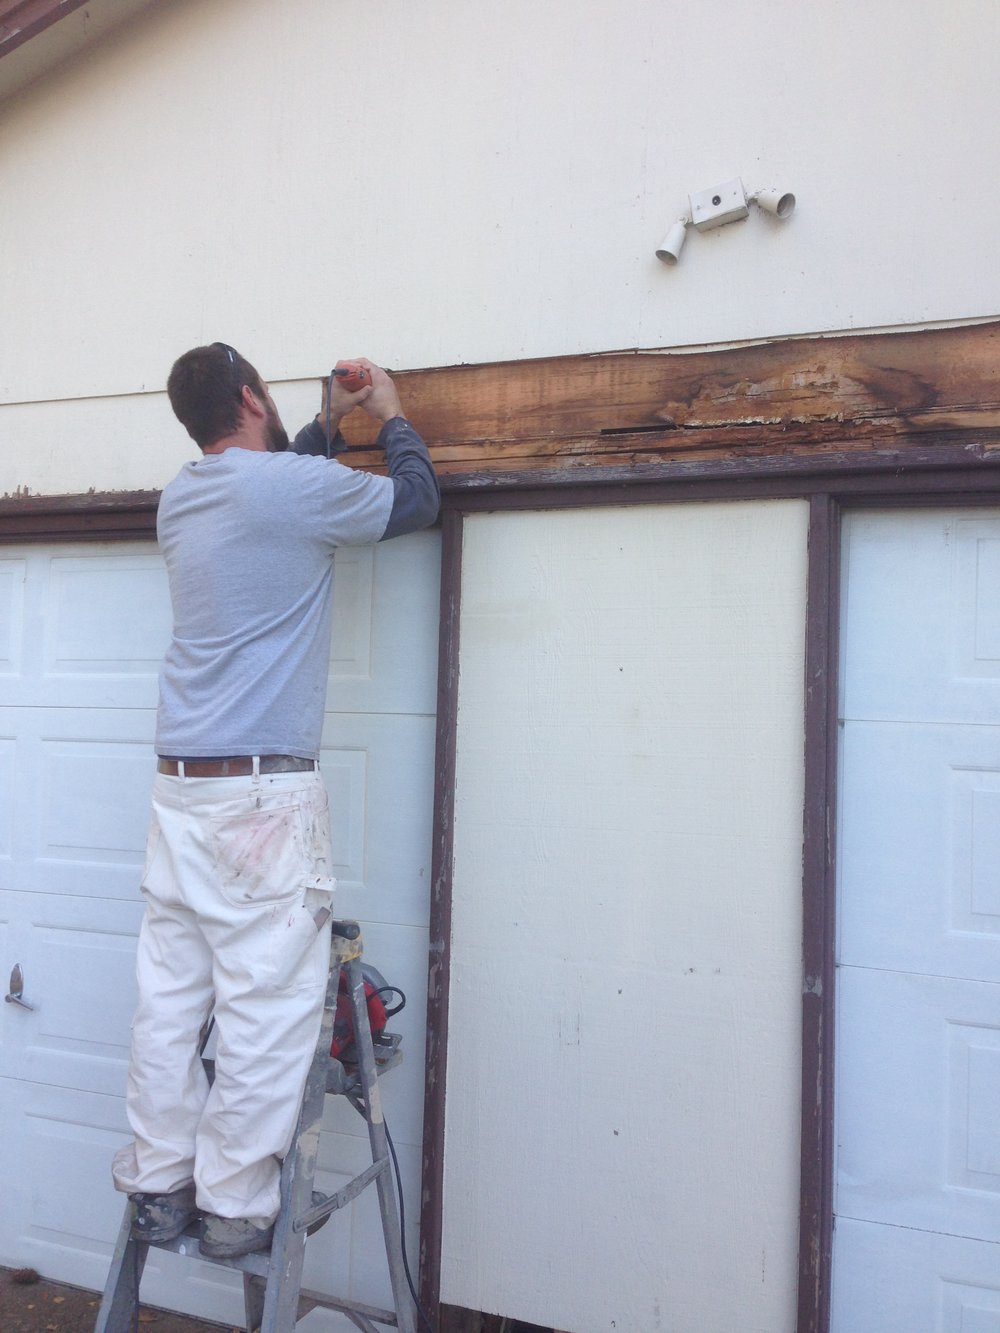 Construction Repair - We handle dry rot removal and repair, siding repairs, deck and fencing repairs, minor construction, etc.